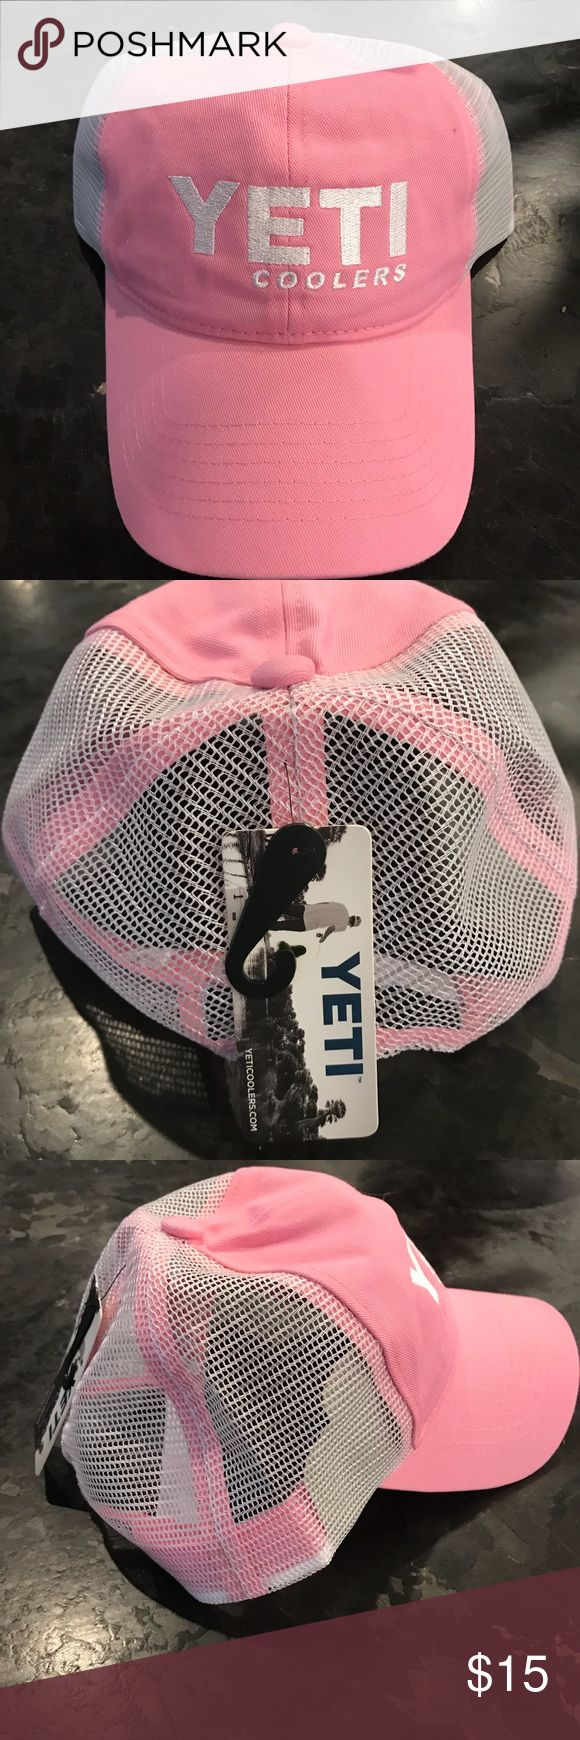 Pink Yeti Hat NWT Selling a pink Yeti hat that is new with tags. Retails for $19.99. Yeti Accessories Hats